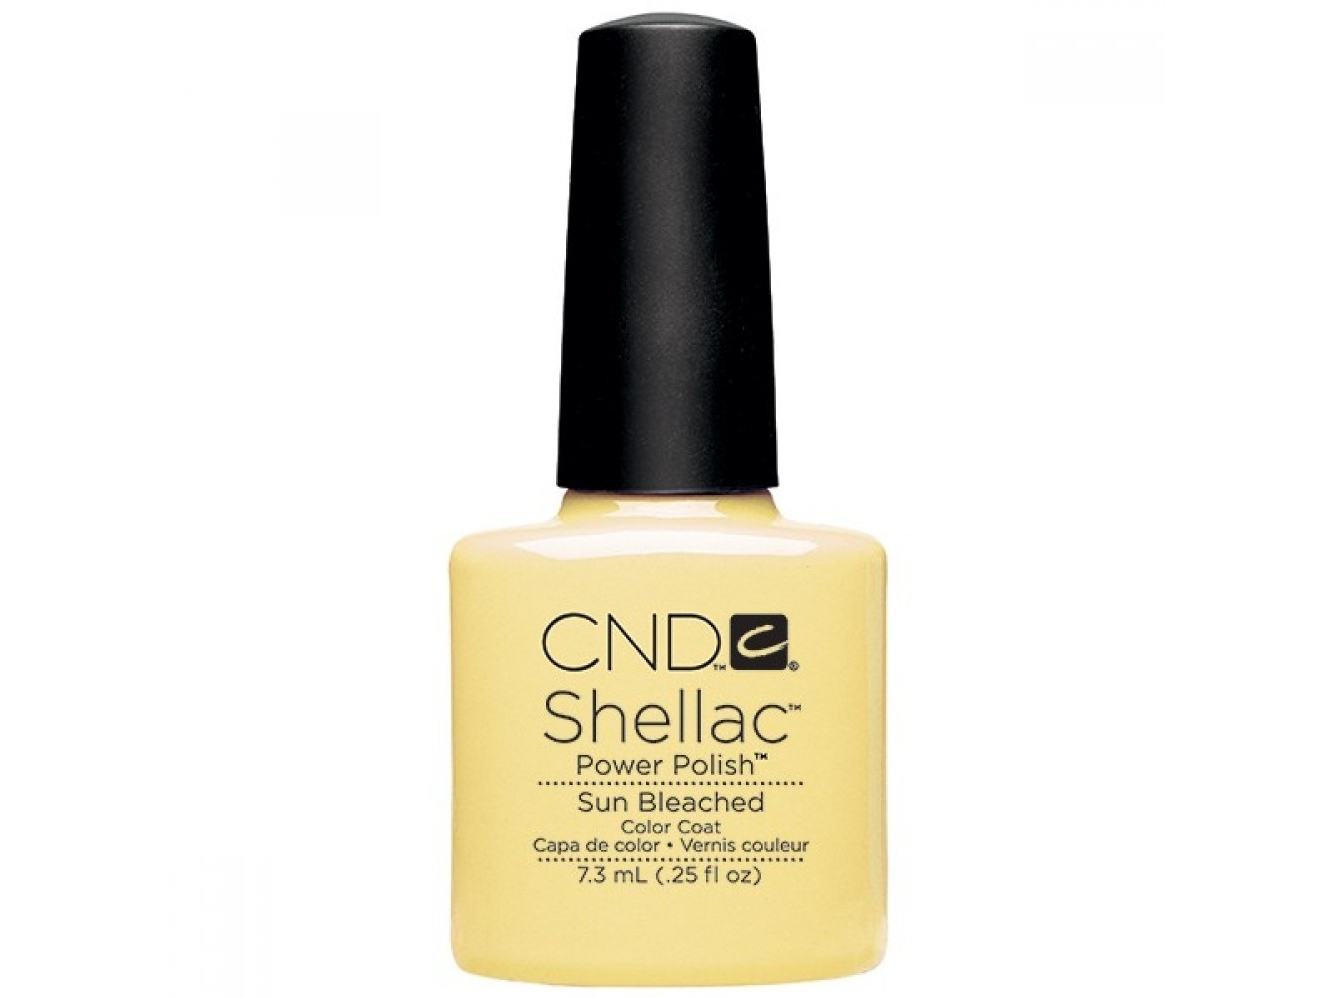 Sun bleached cnd shellac open road collection diva nails